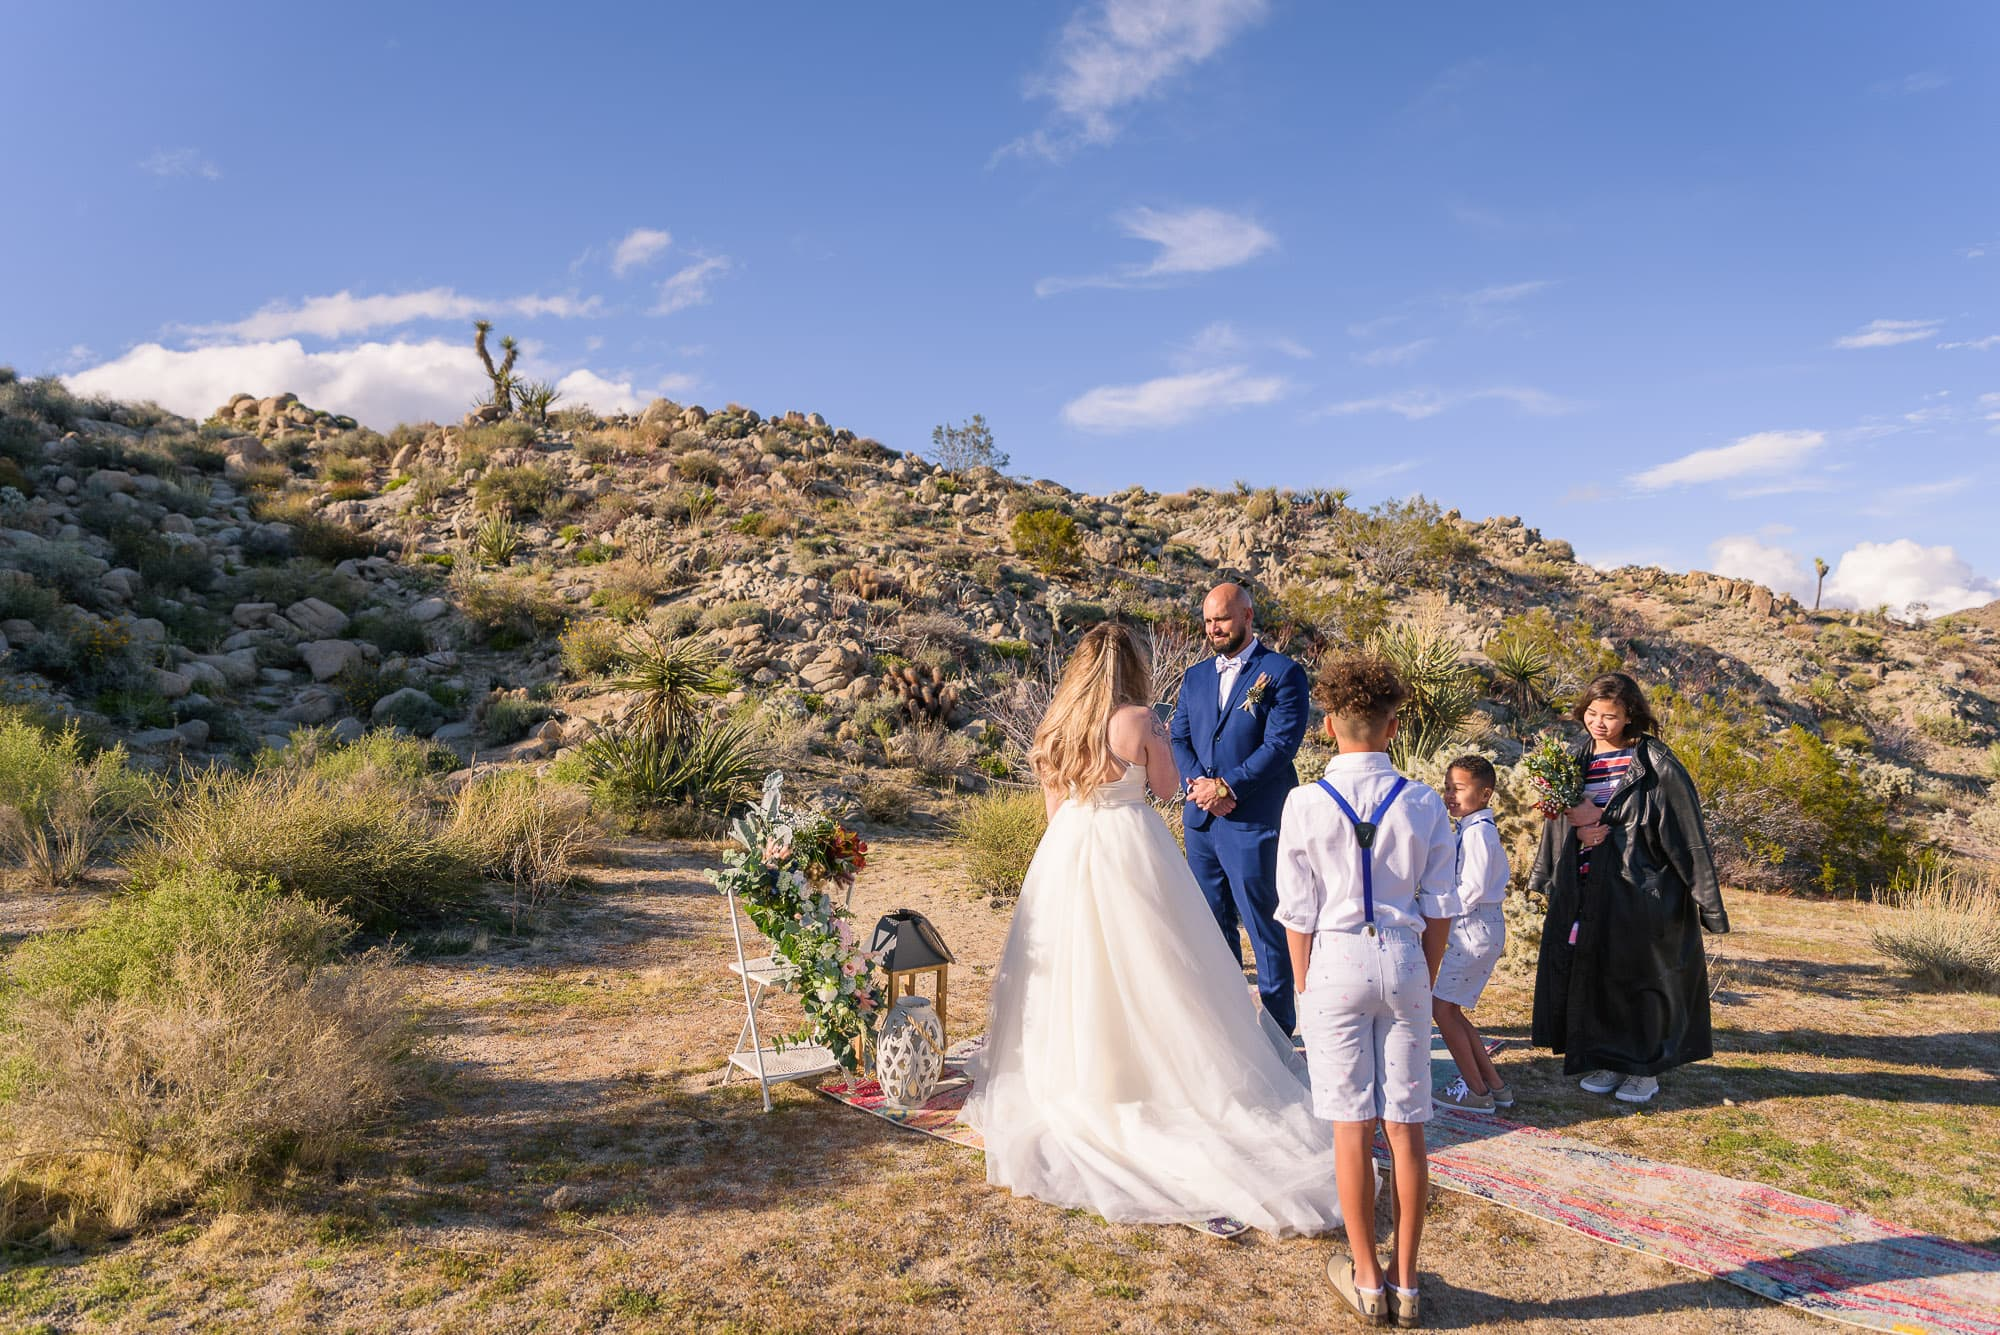 016_Alan_and_Heidi_Joshua_Tree_Spring_Elopement